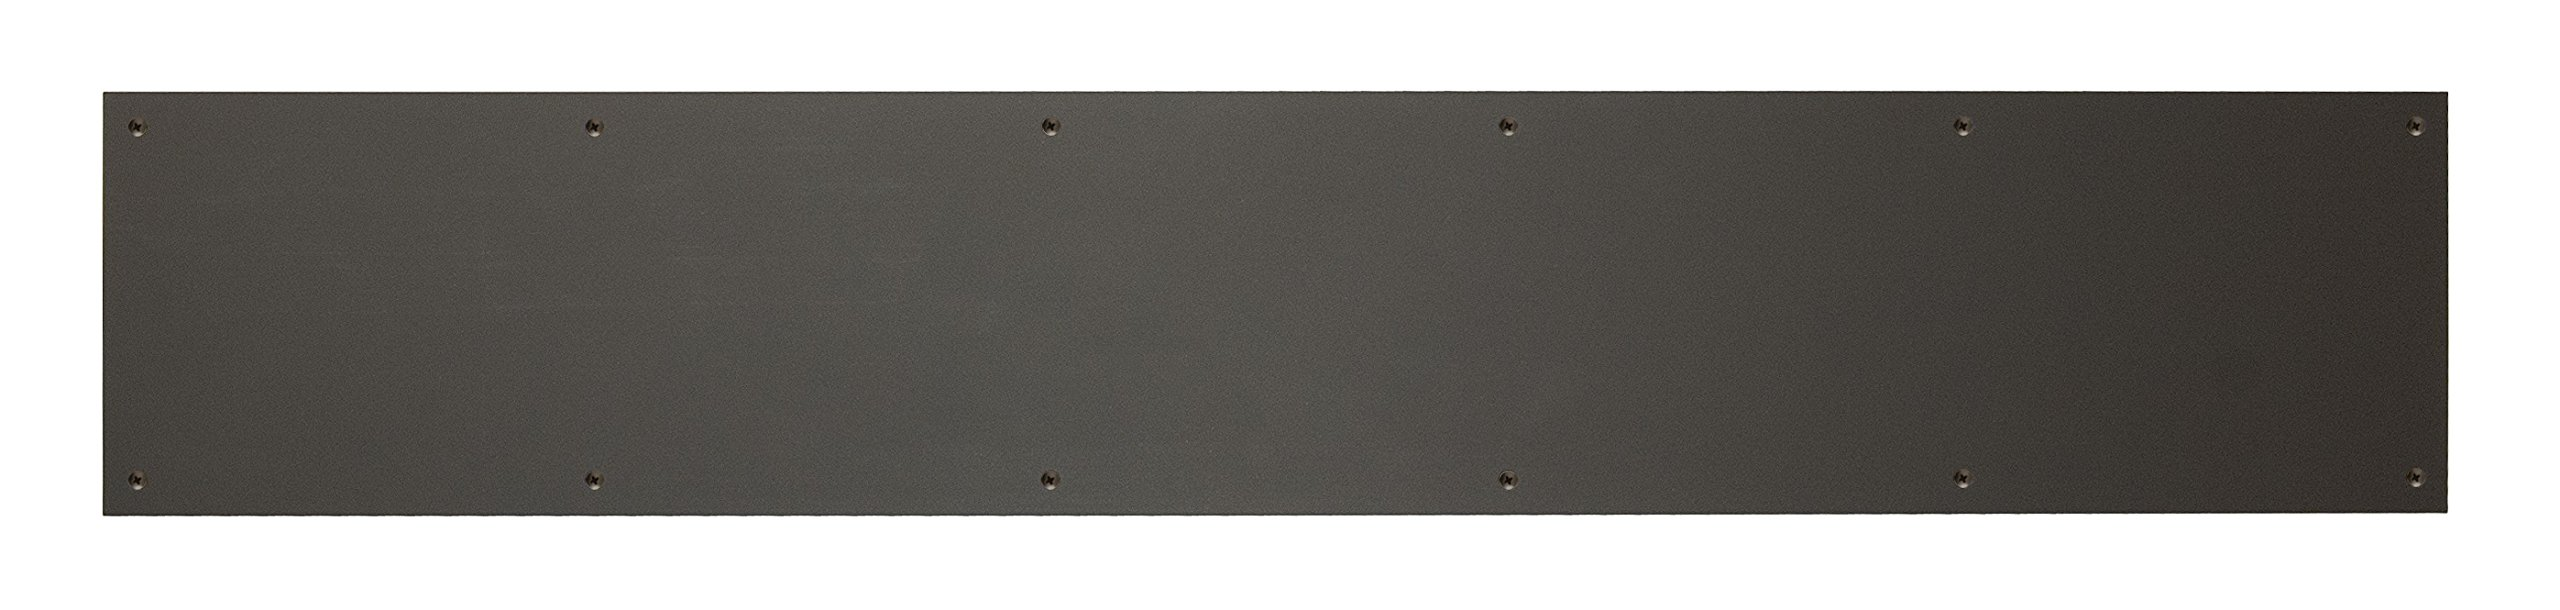 BRASS Accents A09-P0840-613KP 8'' x 40'' Kick Plate Oil Rubbed Bronze Powder Coated Screw Mount